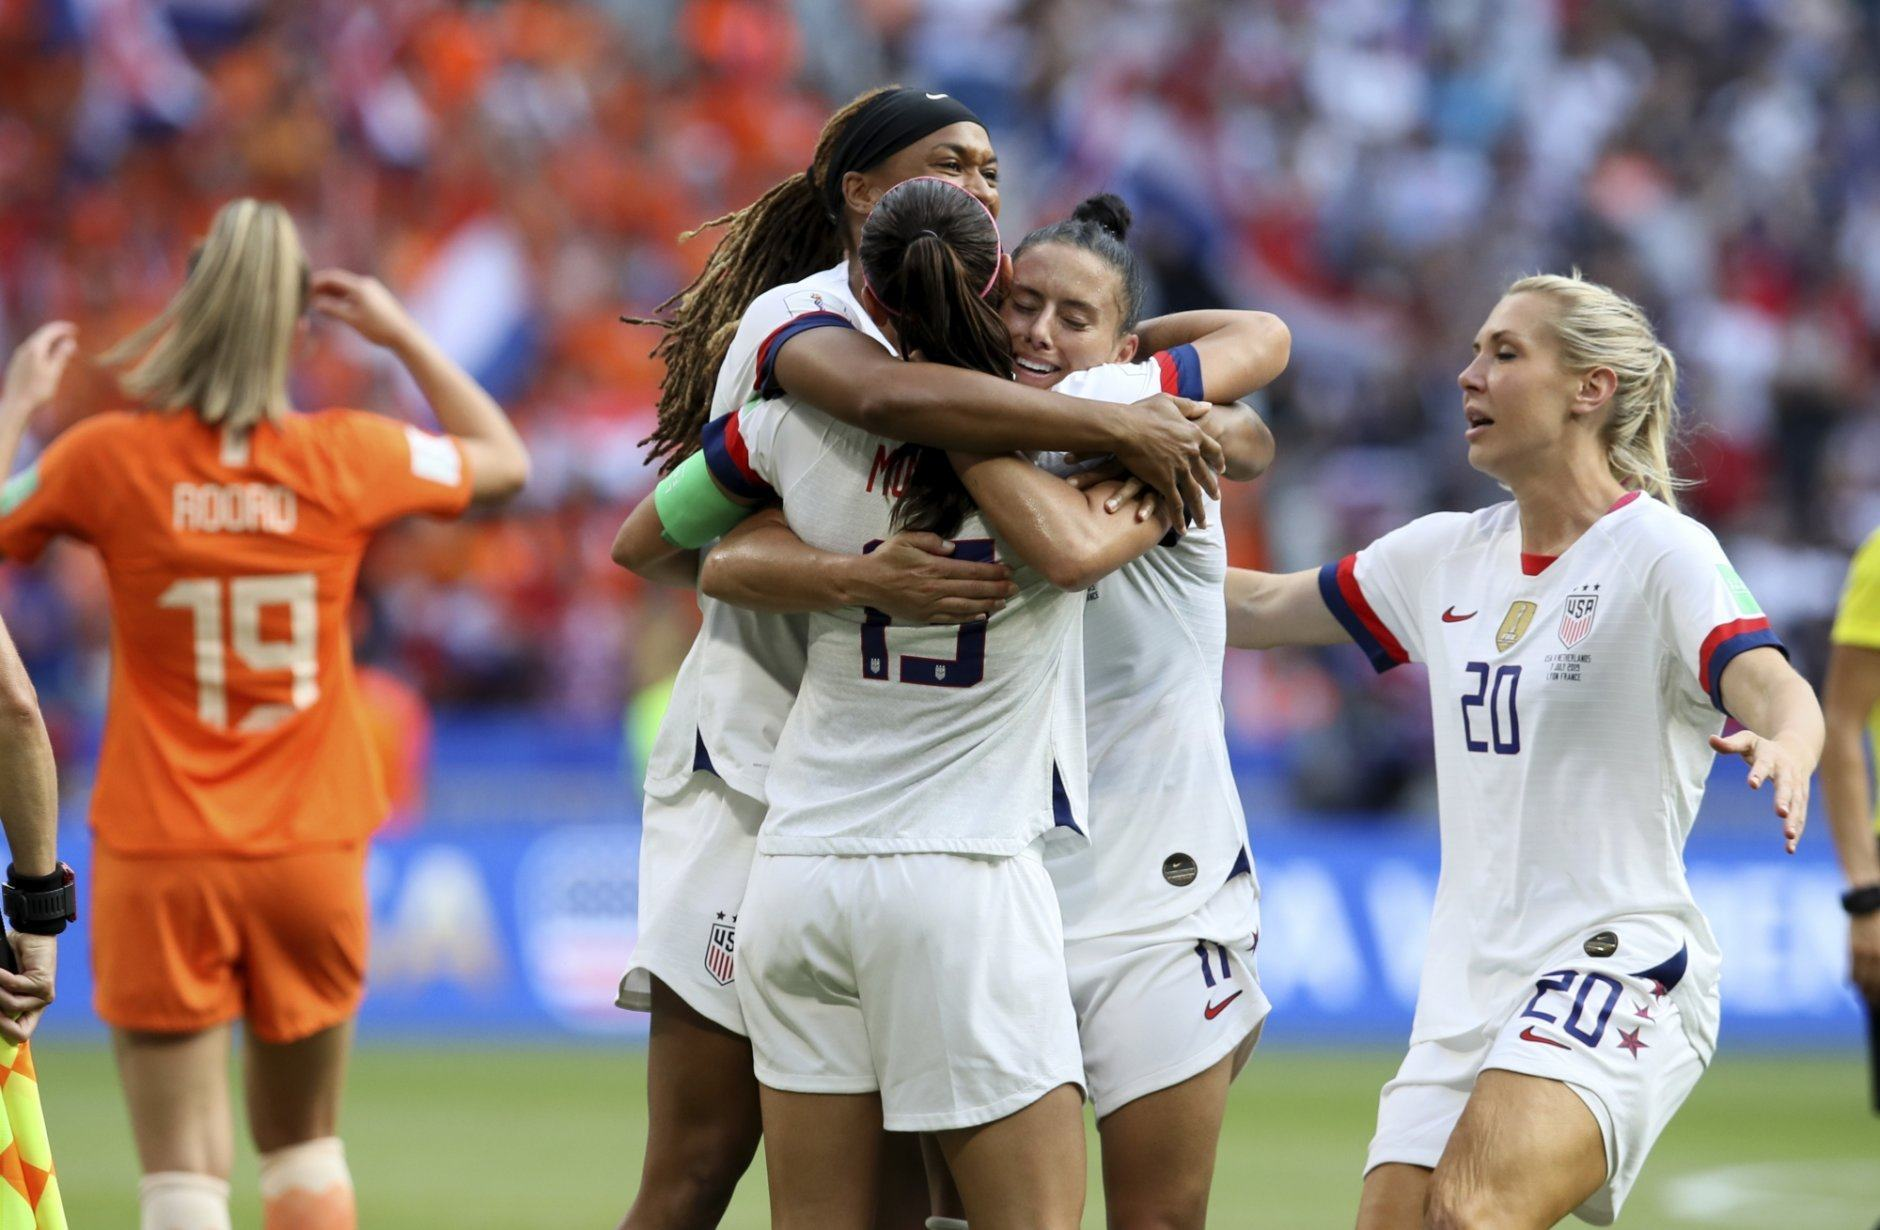 US players celebrate at the end of the Women's World Cup final soccer match between US and The Netherlands at the Stade de Lyon in Decines, outside Lyon, France, Sunday, July 7, 2019. US won 2:0. (AP Photo/David Vincent)